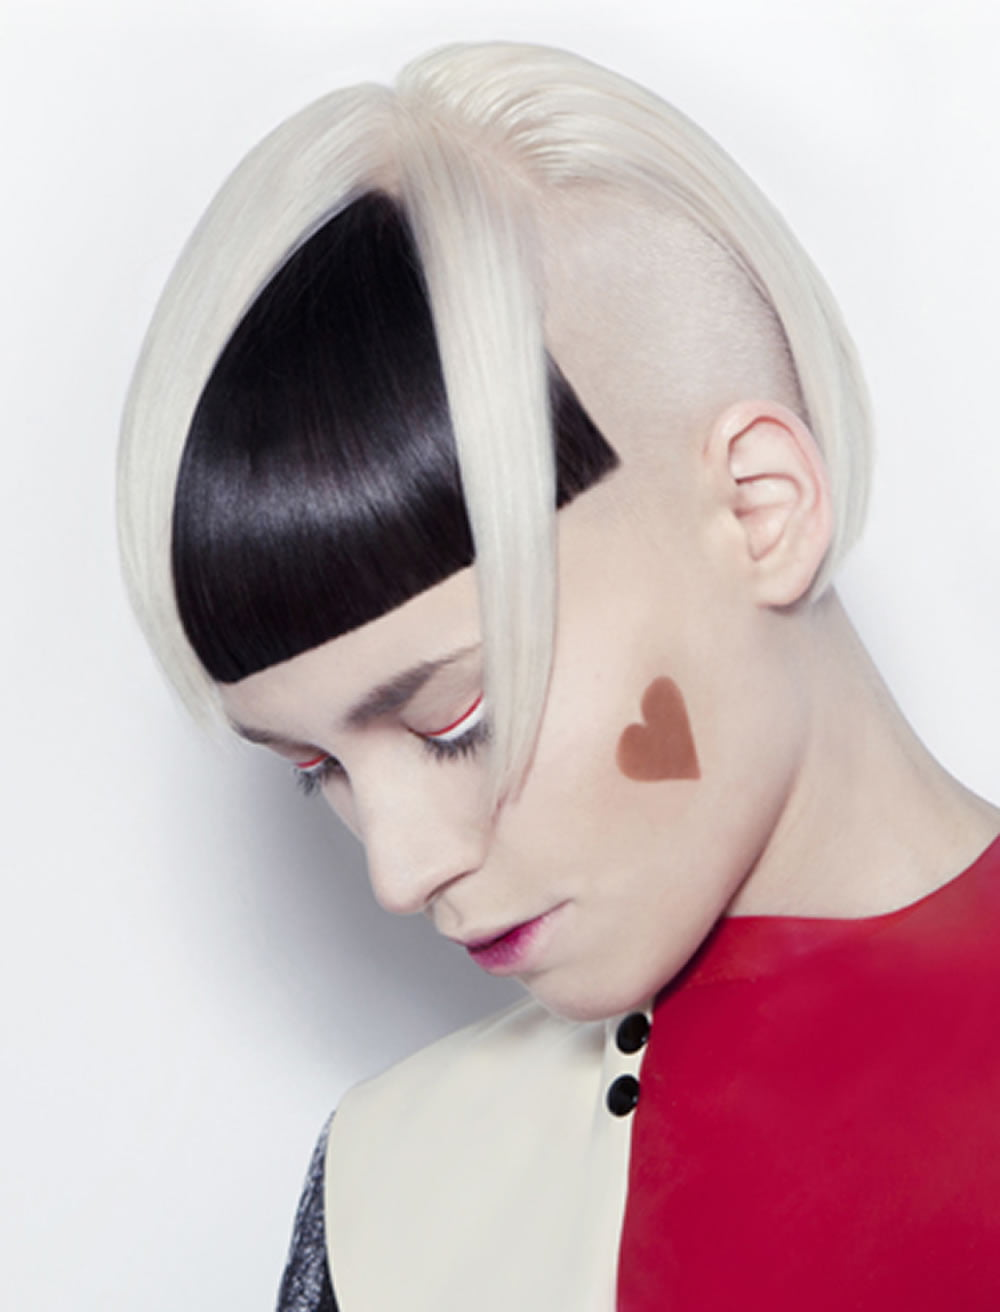 Best 25 Pictures of haircuts ideas on Pinterest